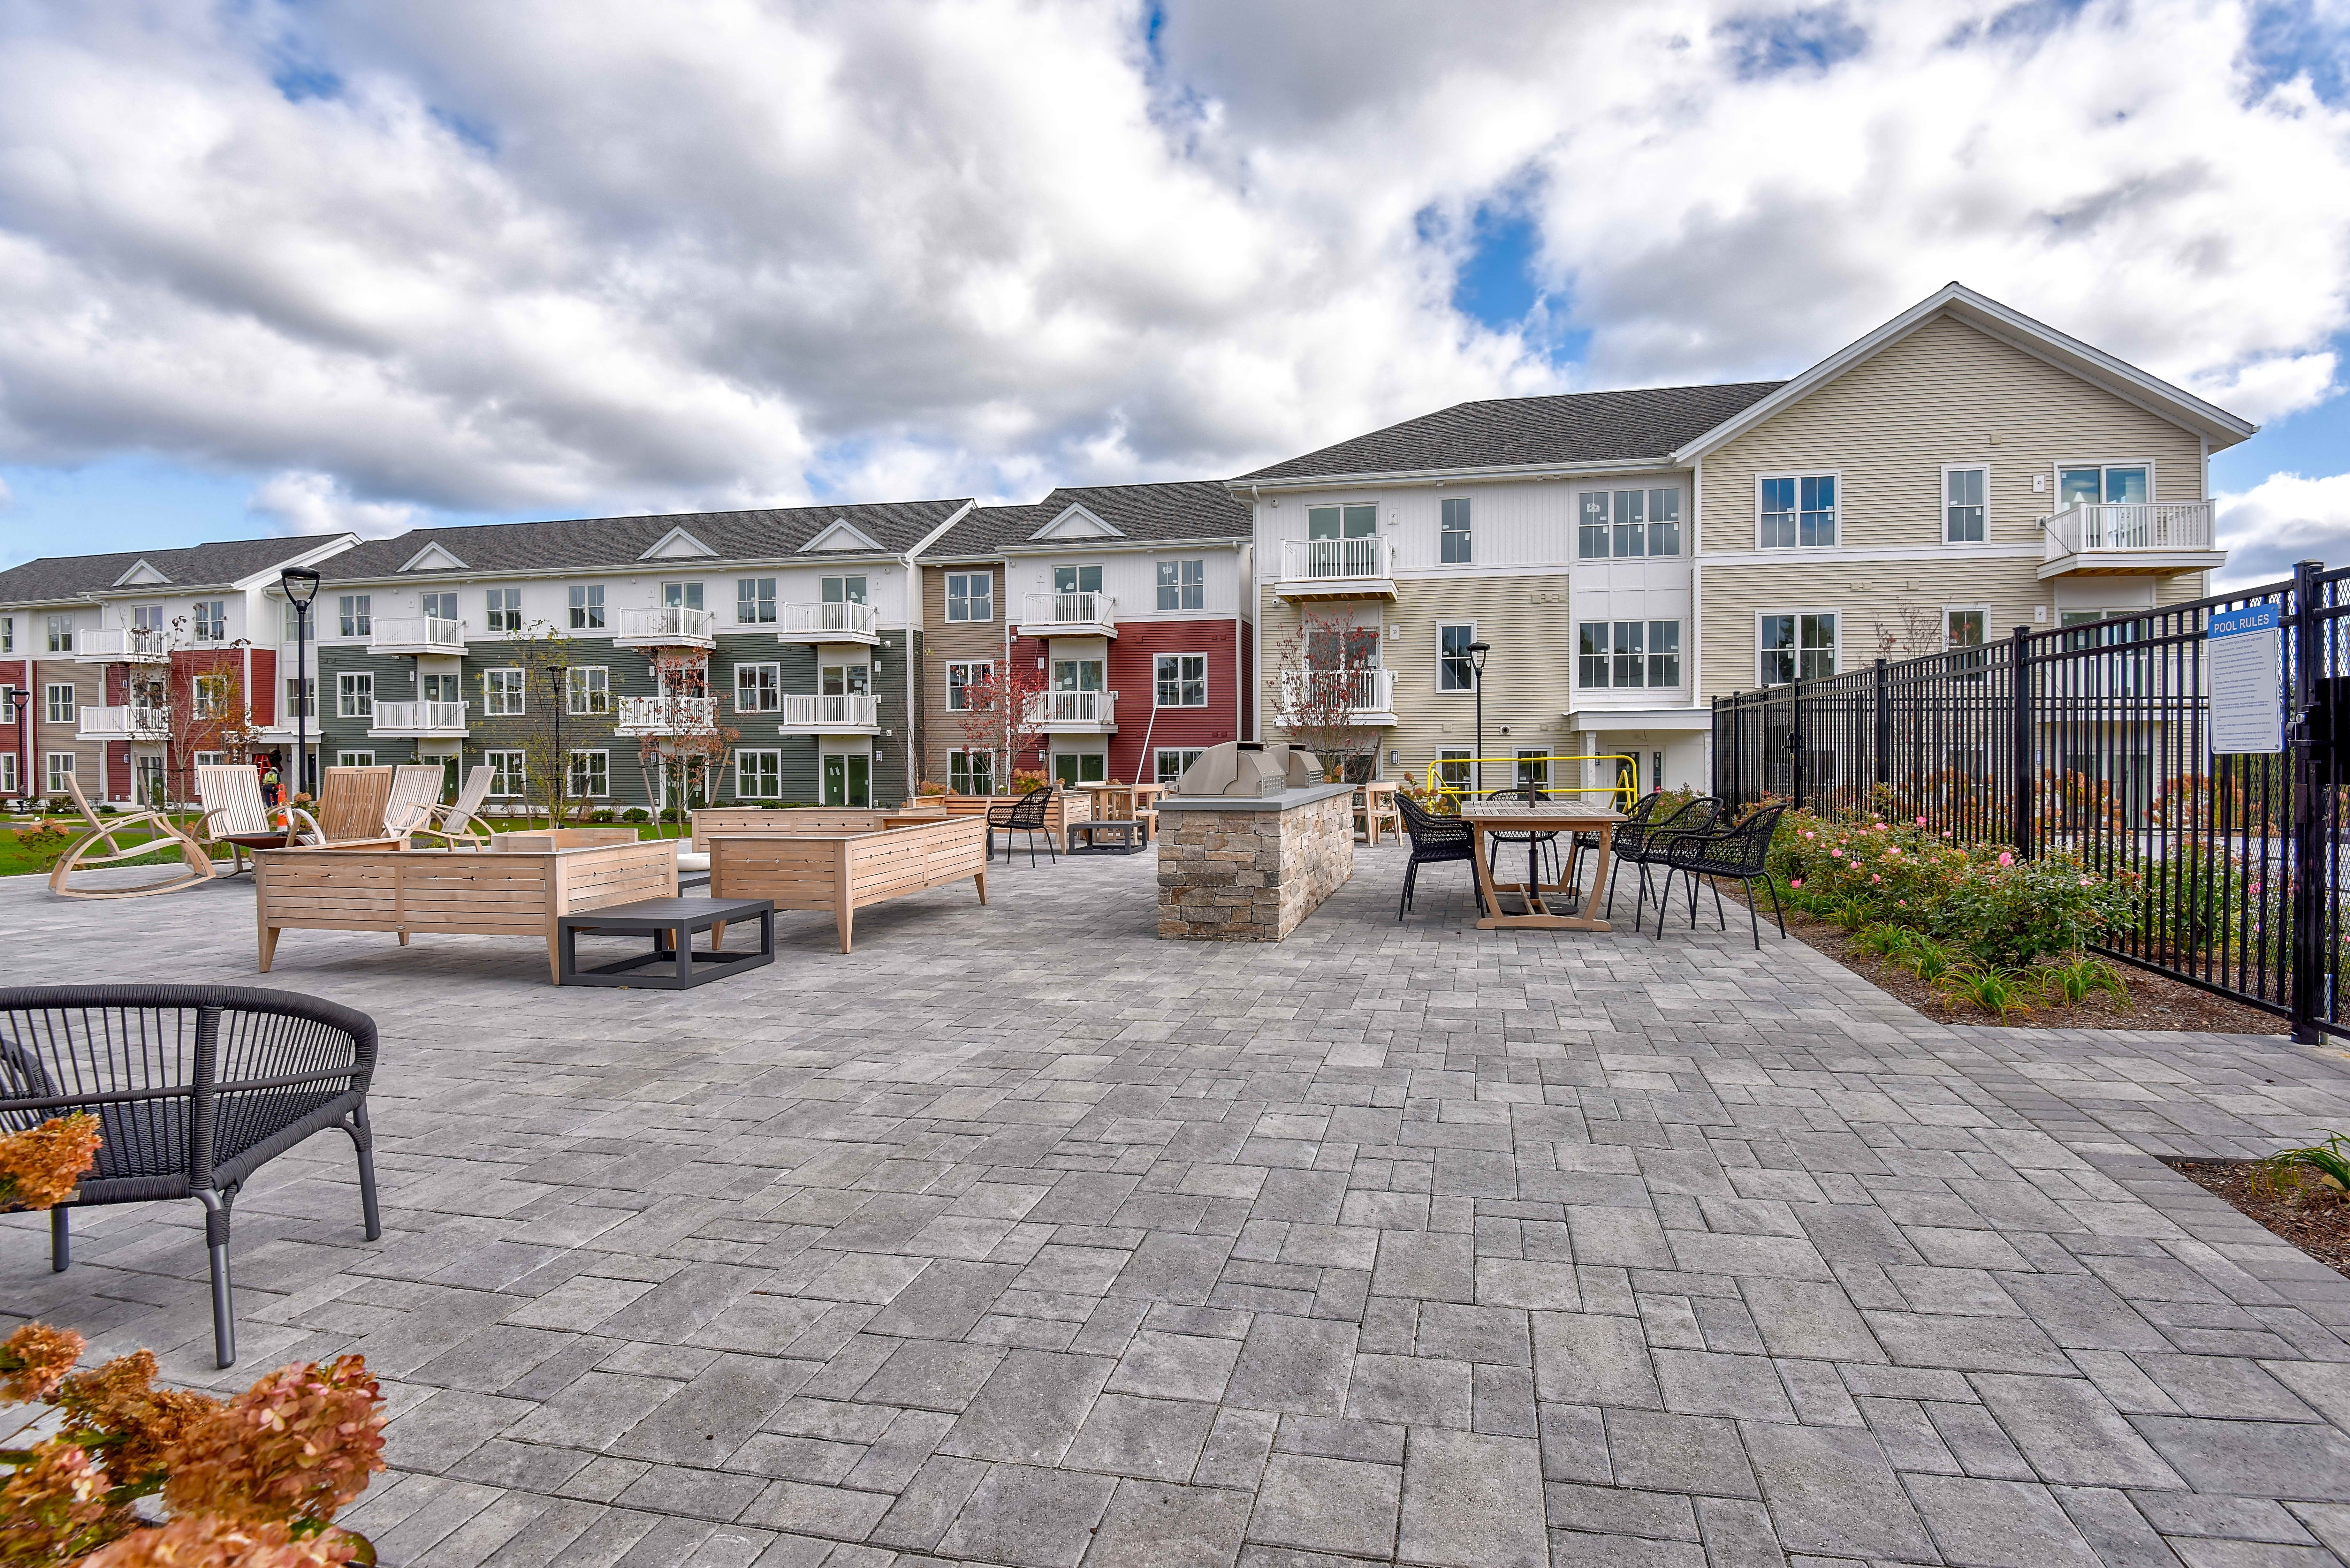 Apartments Near Mass Maritime Redbrook Apartments for Massachusetts Maritime Academy Students in Buzzards Bay, MA